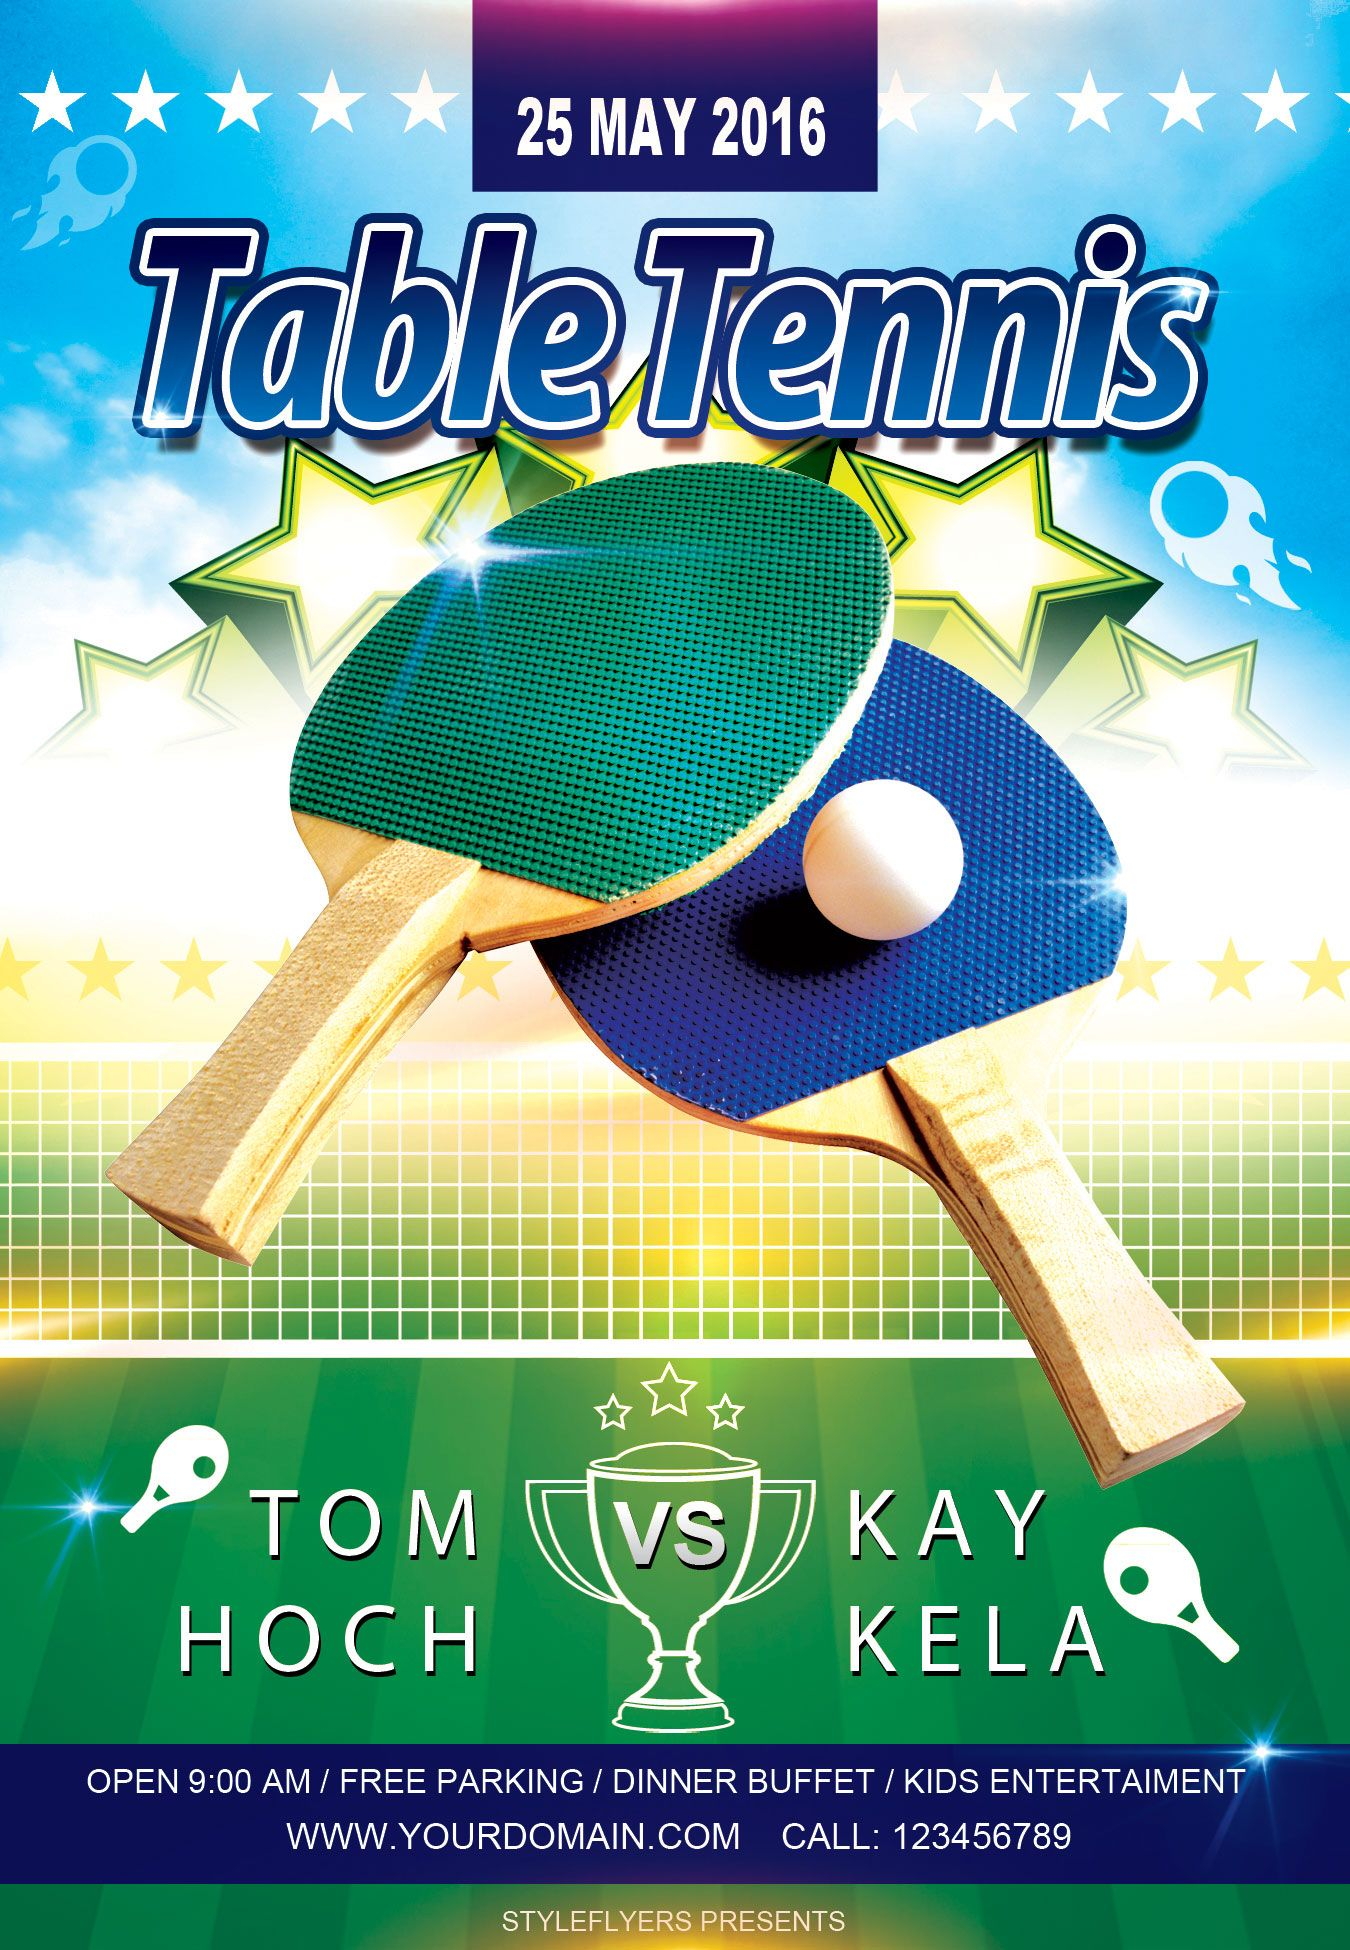 free sport party psd flyer template by styleflyers com  this free table tennis psd flyer